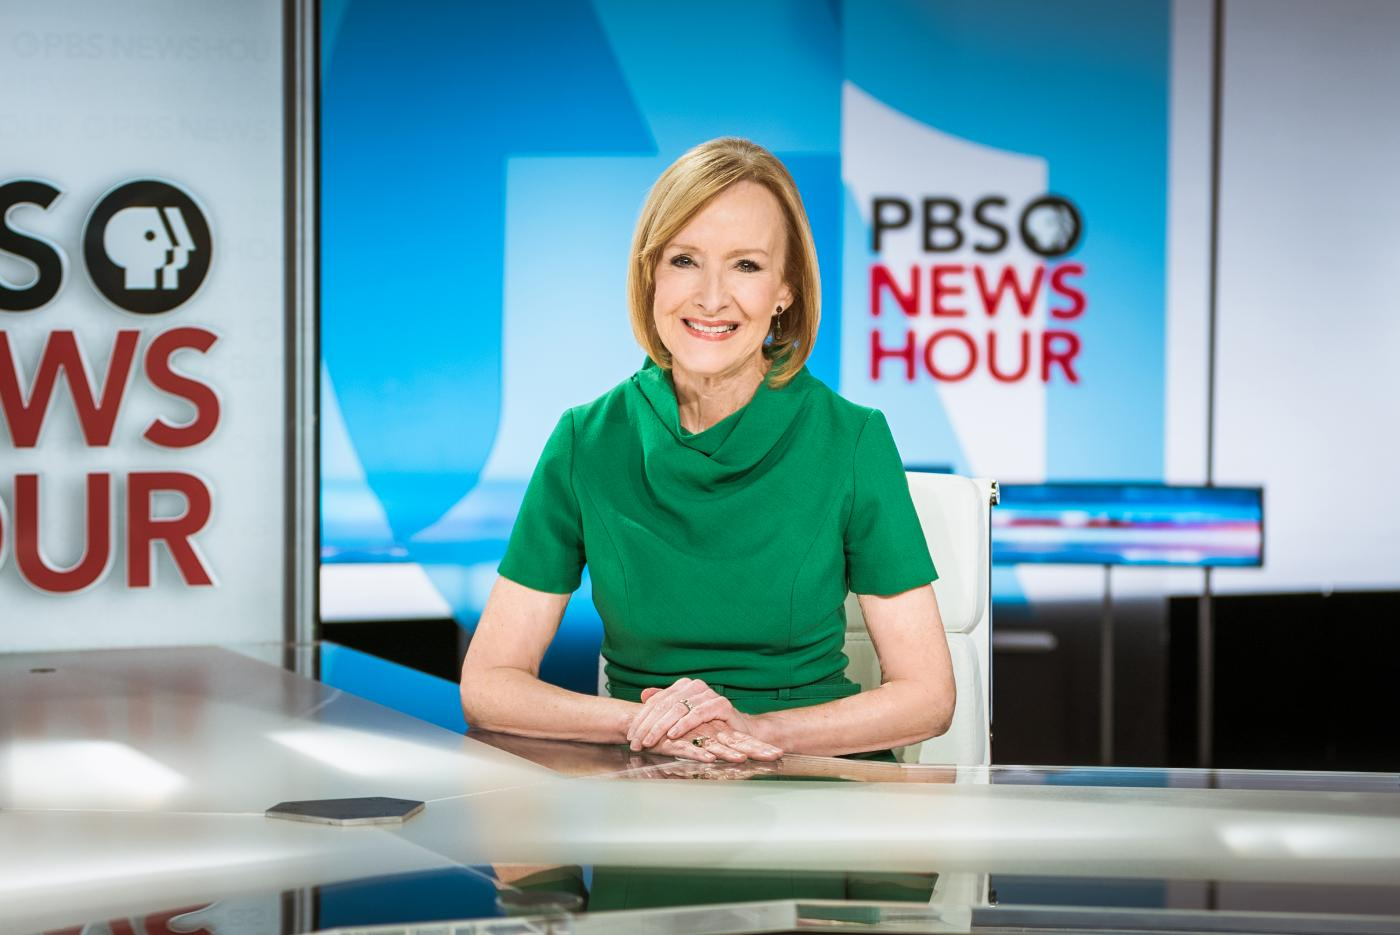 Judy Woodruff, PBS NewsHour Anchor and Managing Editor